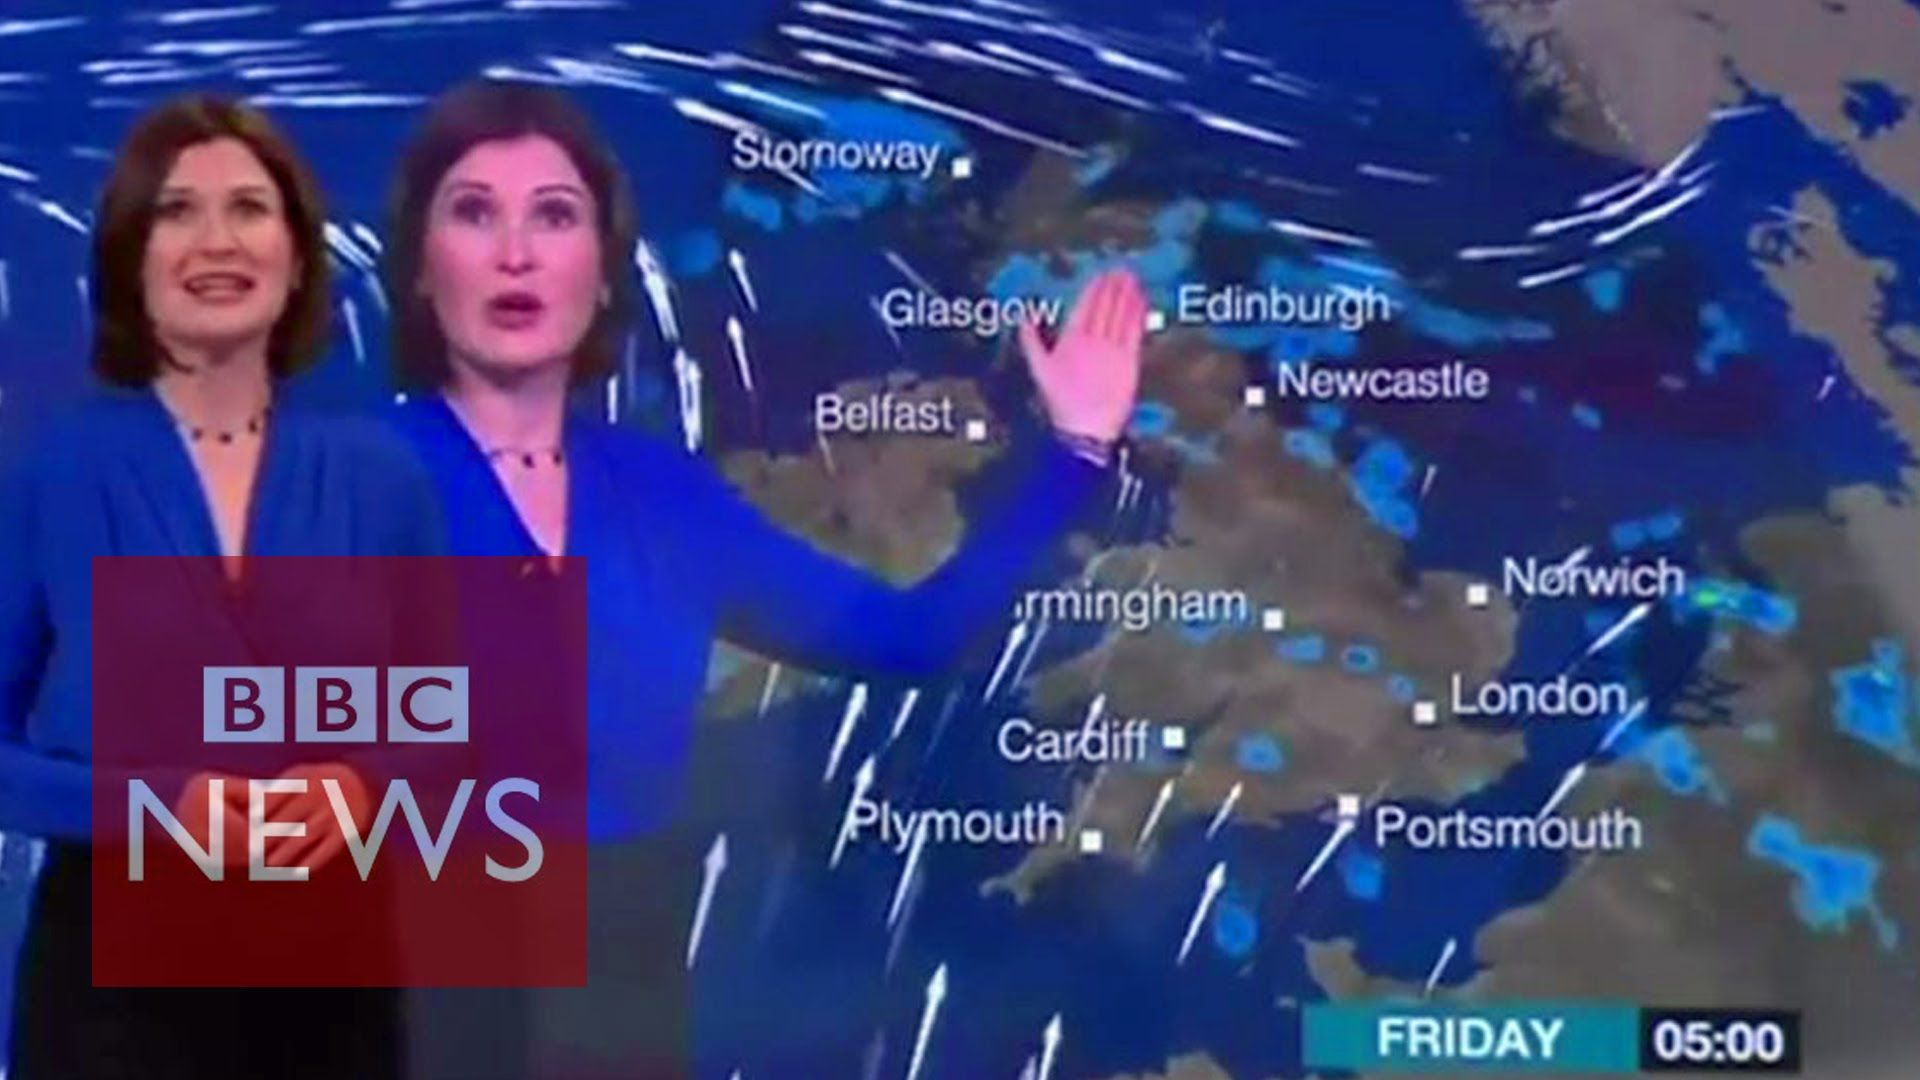 When BBC weather forecast goes wrong Bloopers & funny